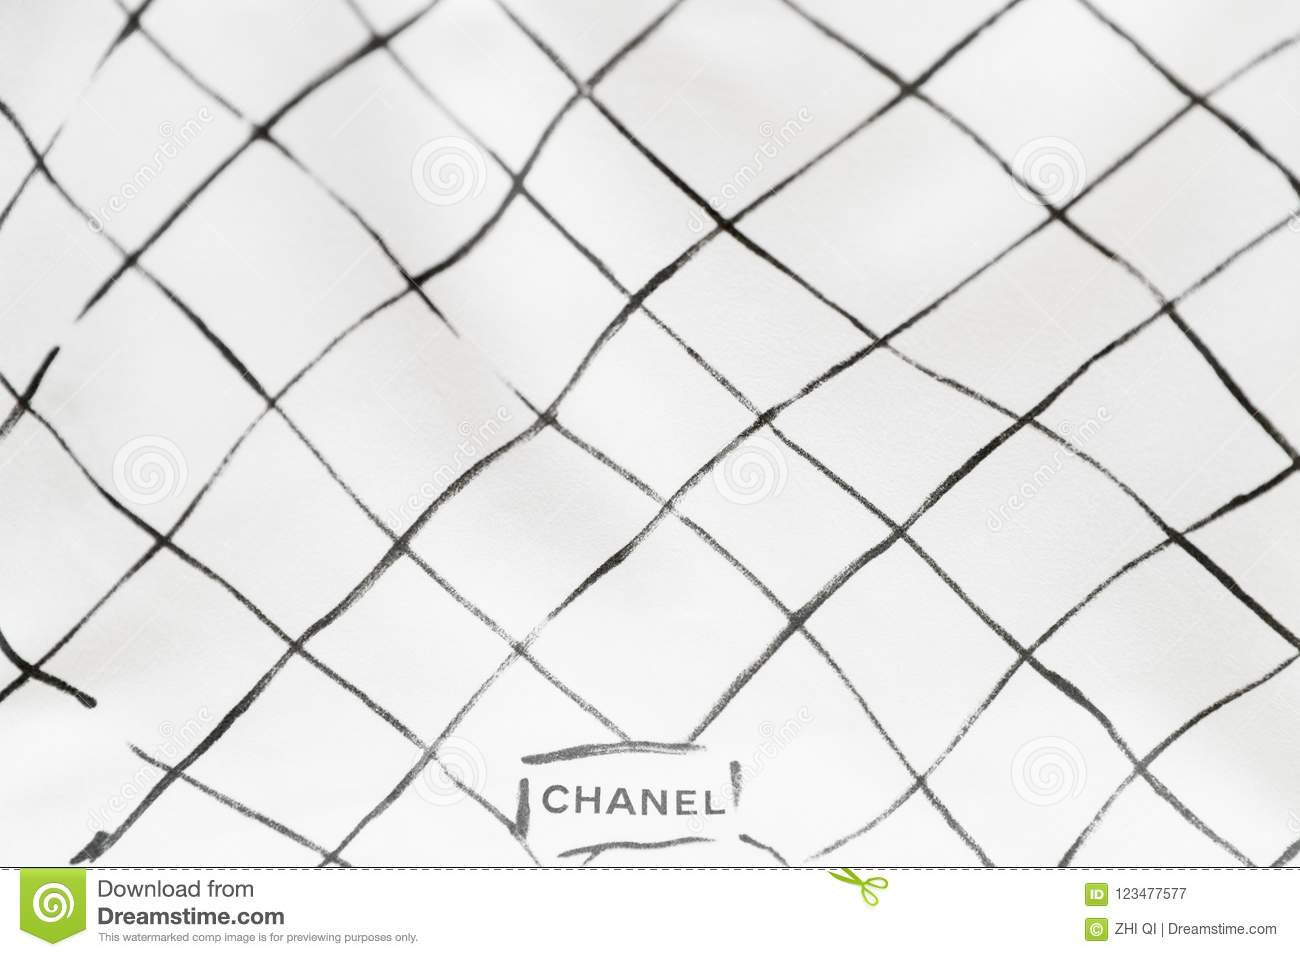 649177f2e7a3 Photo Of Black Chanel Dust Bag Brand Editorial On White Background ...